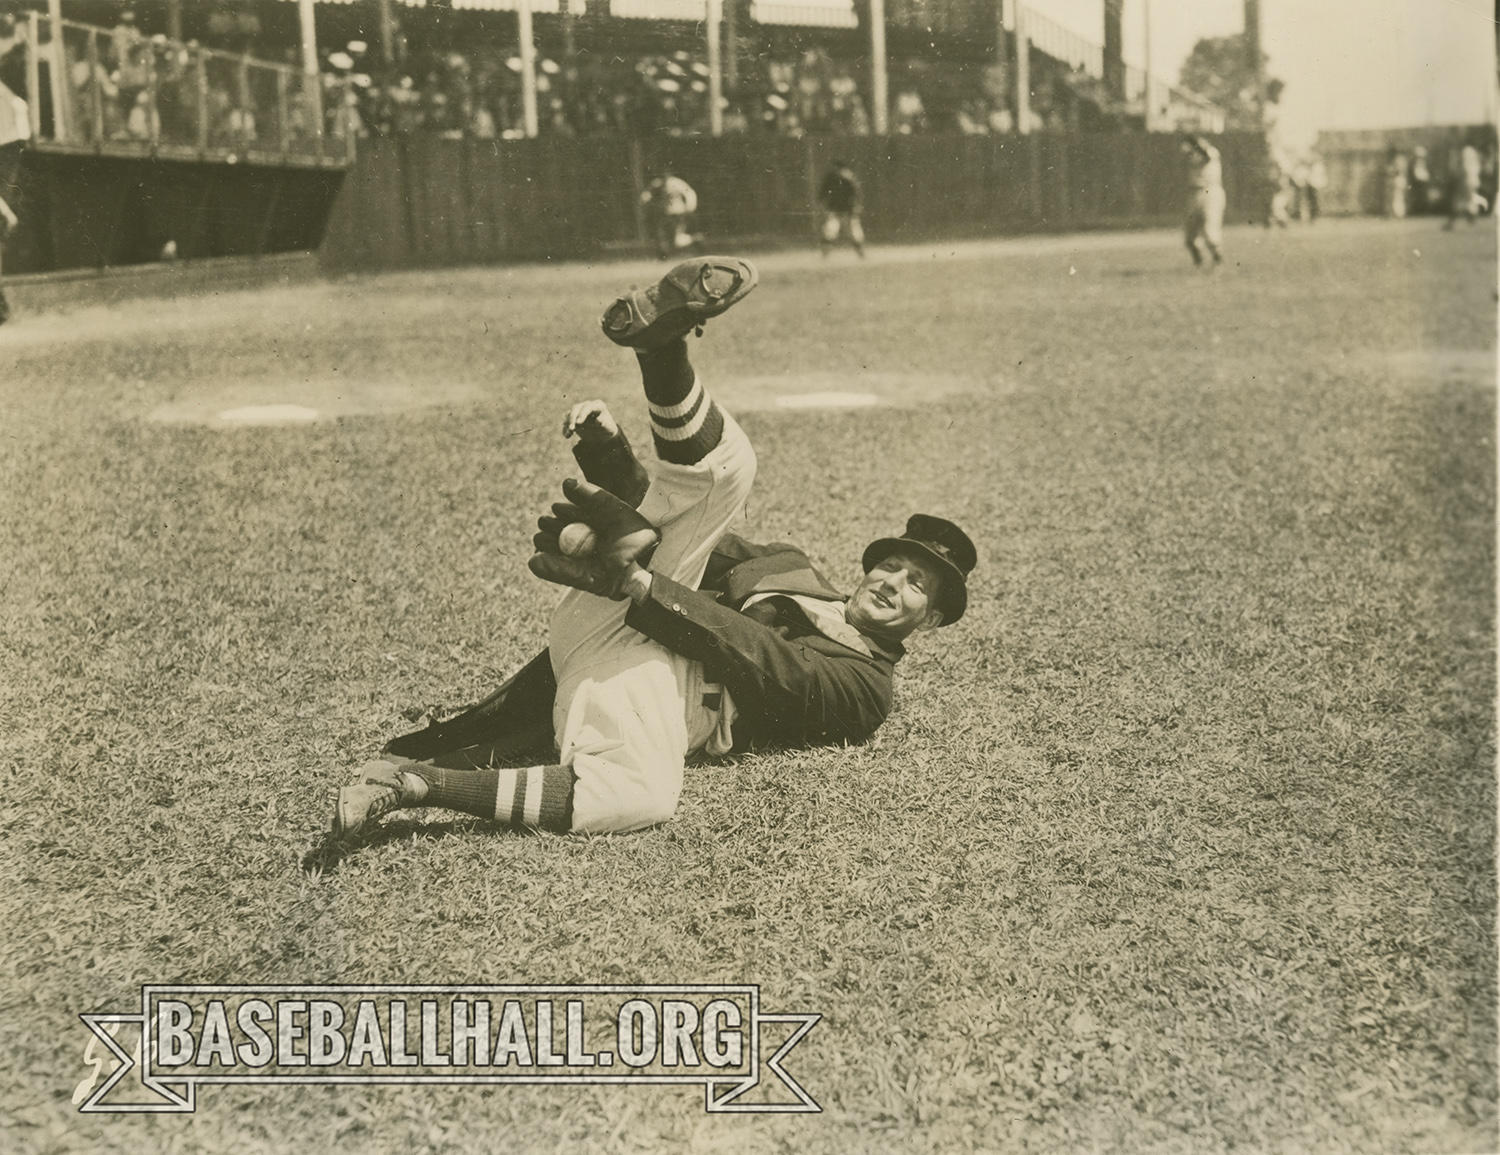 """As part of his Baseball Clown routine, Al Schacht (pictured above) would wear a swallowtail tuxedo jacket and top hat, now part of the Hall of Fame's collection, and occasionally ate a fine meal on home plate between innings. <a href=""""https://collection.baseballhall.org/PASTIME/al-schacht-photograph-undated-0"""">PASTIME</a> (National Baseball Hall of Fame and Museum)"""